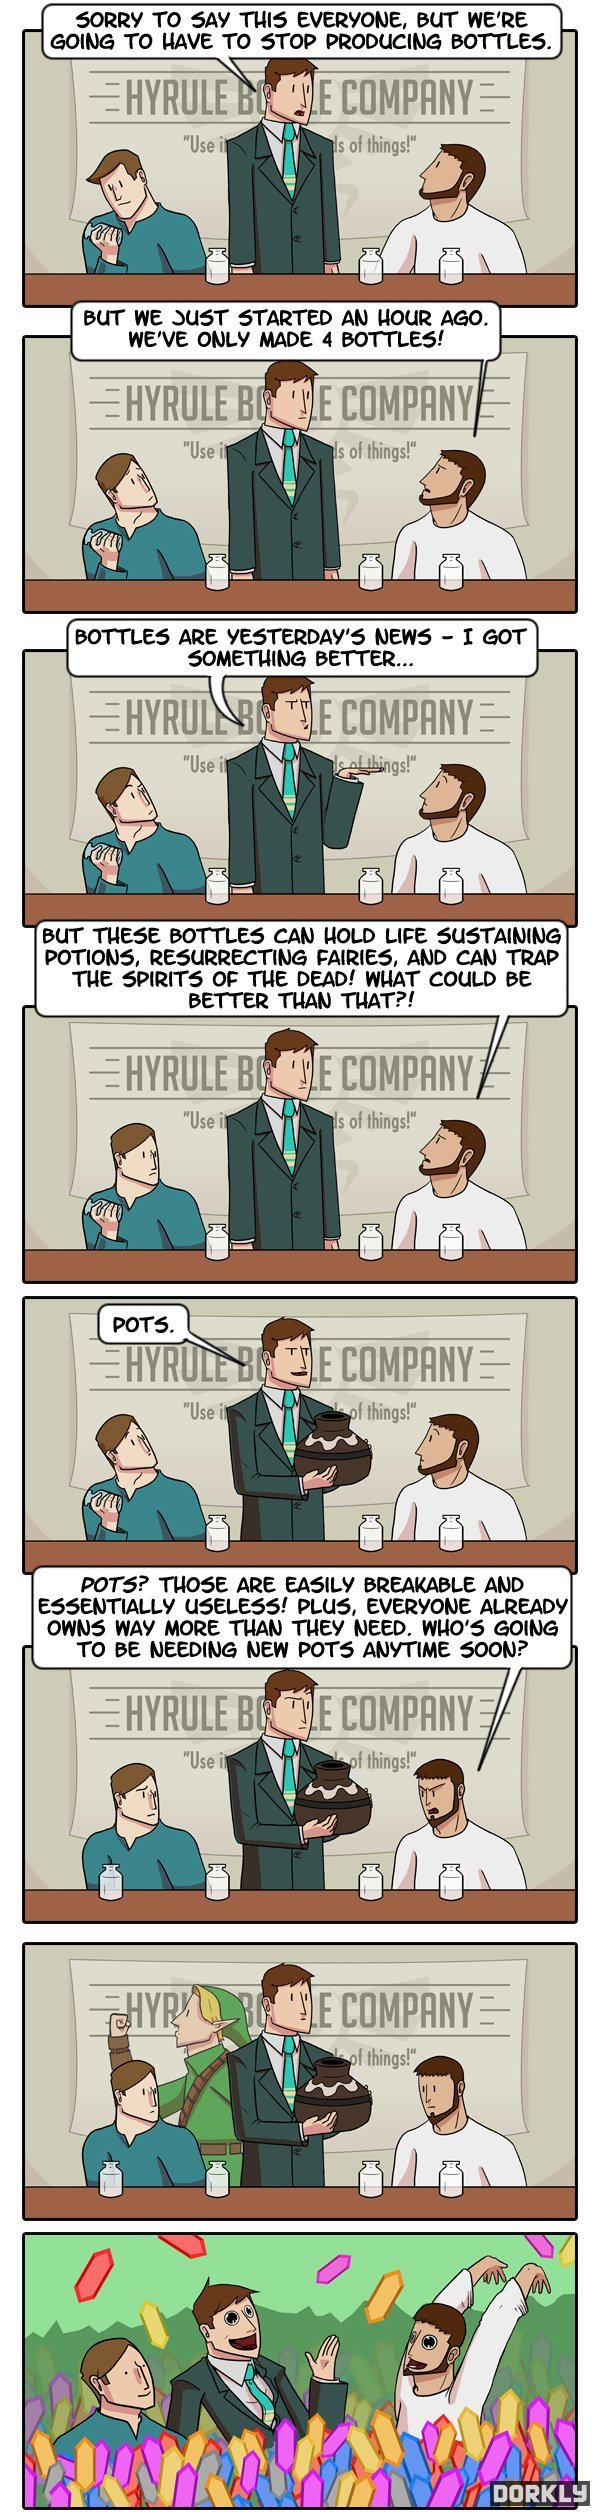 CEO knows his business outlooks. Credit to dorkly. ERR? TO SAN' THE': EVERYONE, BUT HERE GOING: TO HAVE TO STOP PRODUCING BOTTLES. BOTTLES ARE YEST' ' S NEWS -